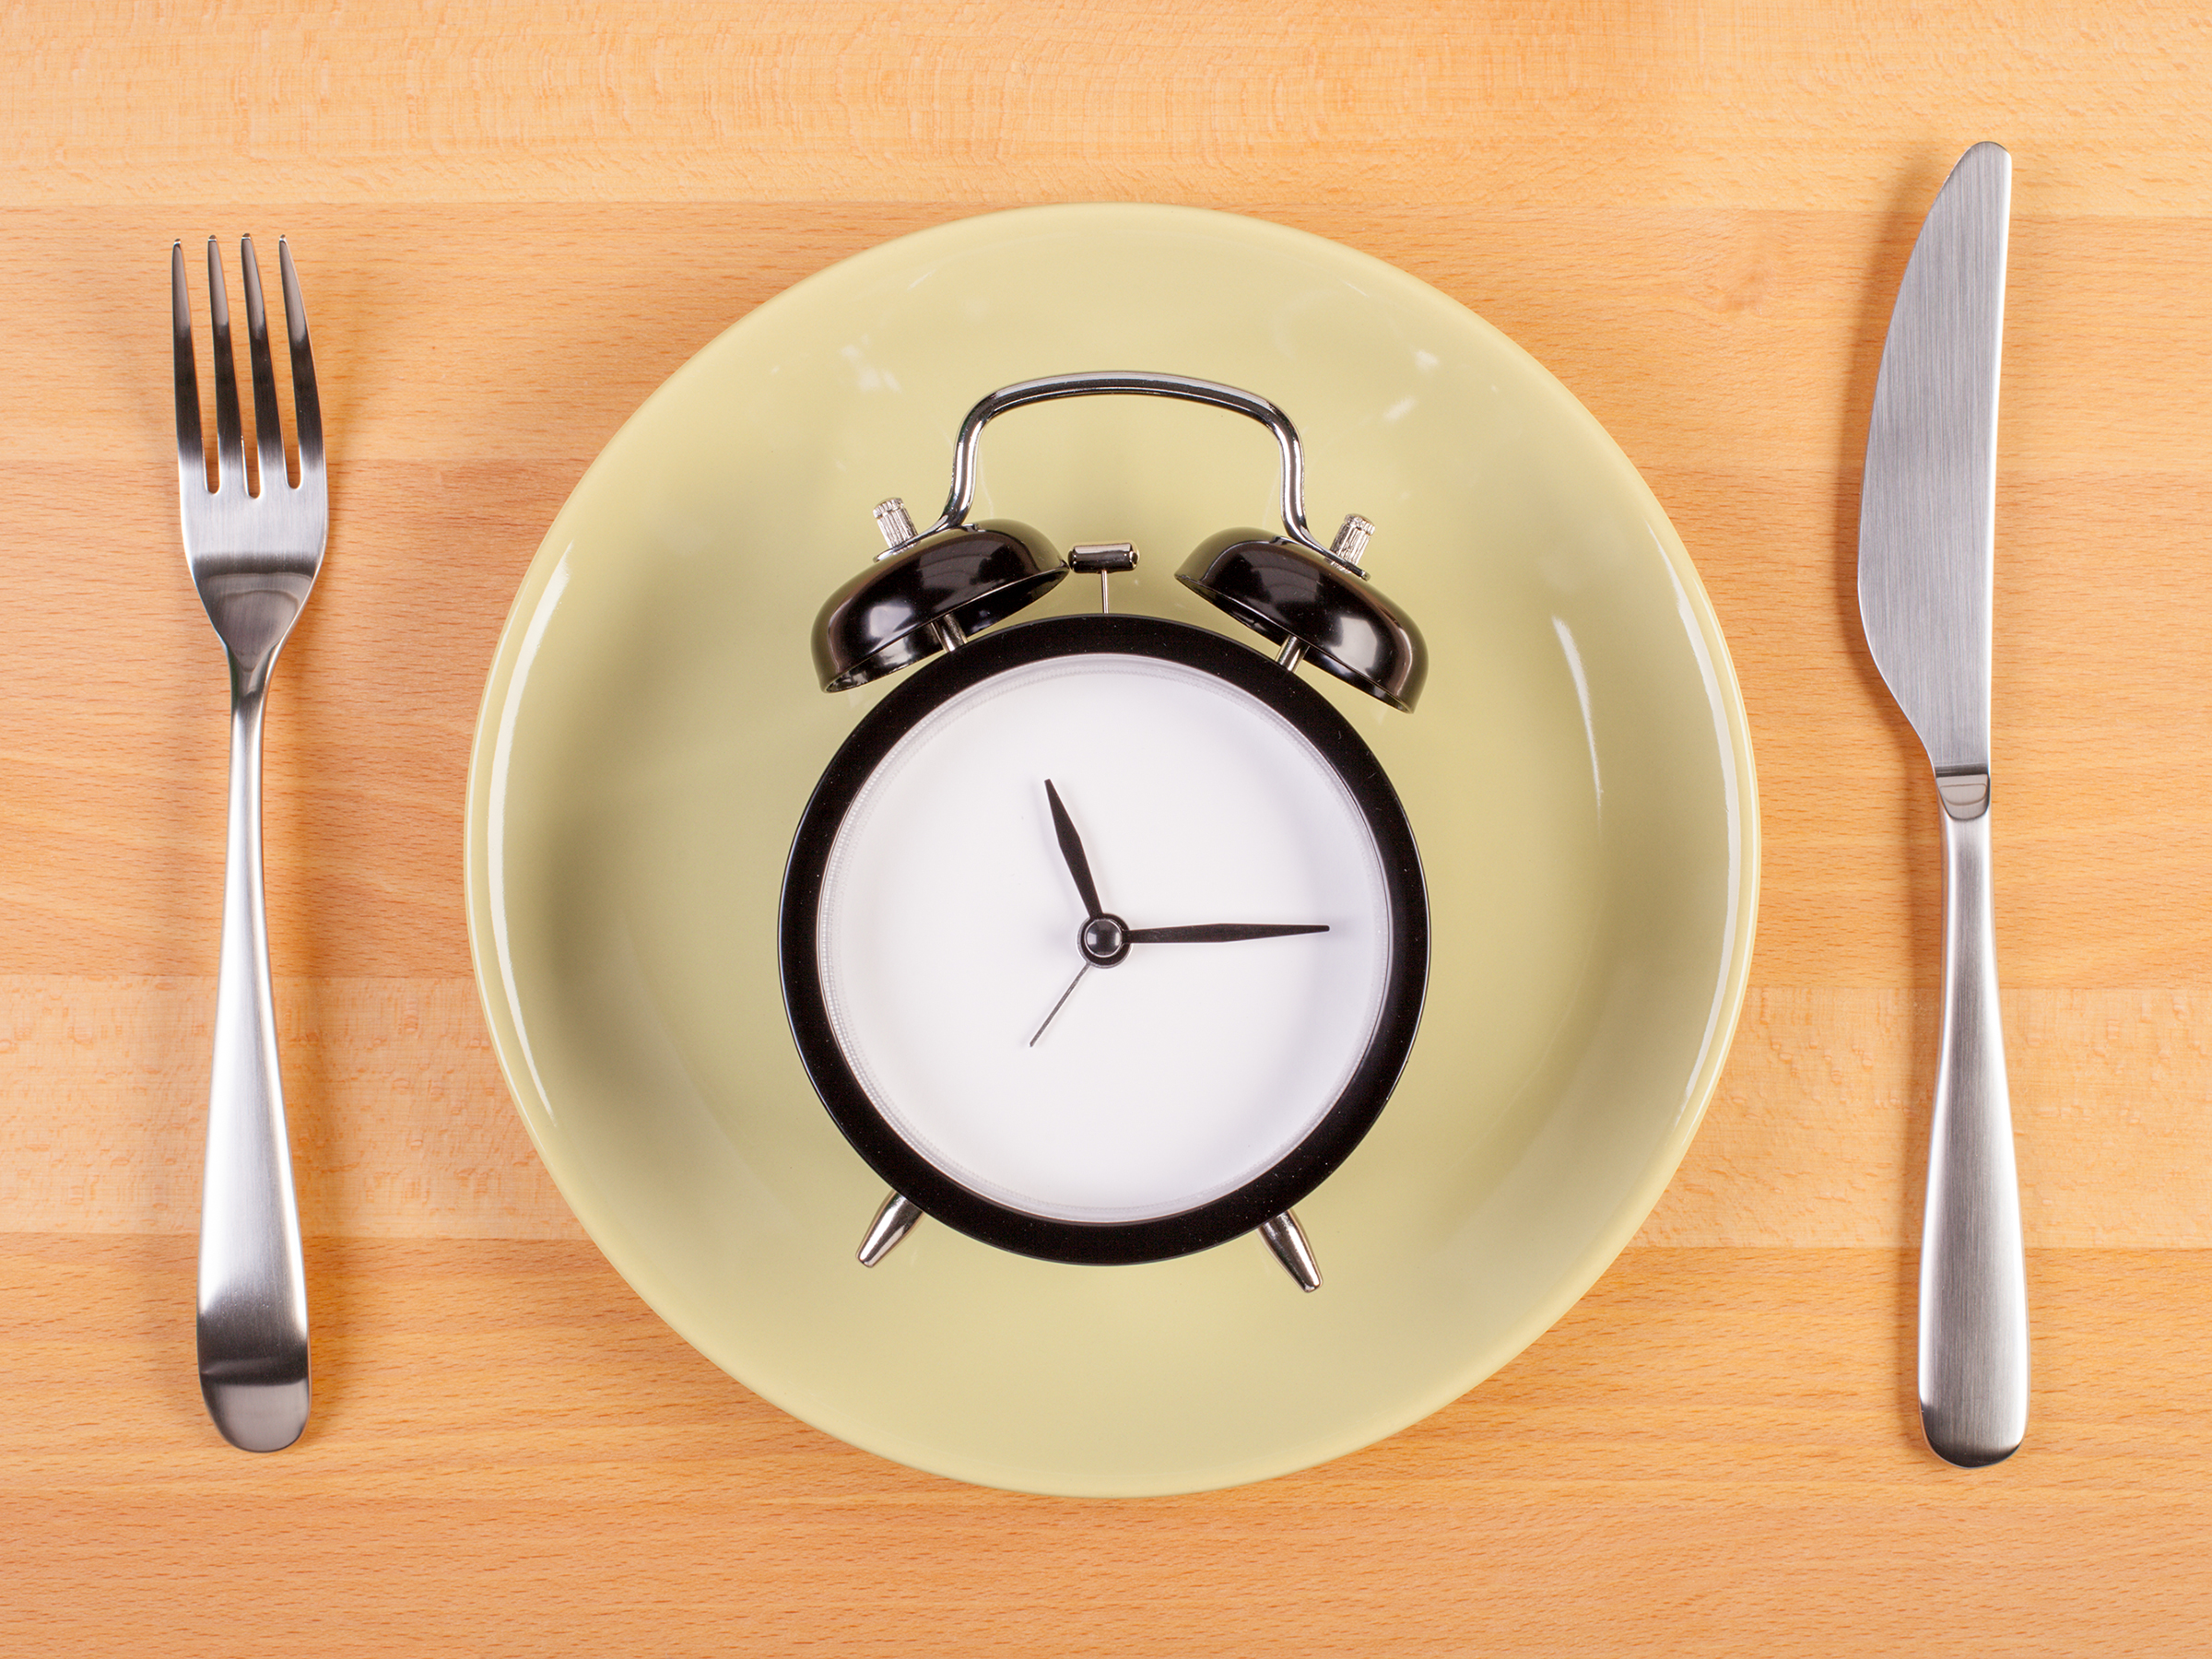 Fasting Clock and Plate